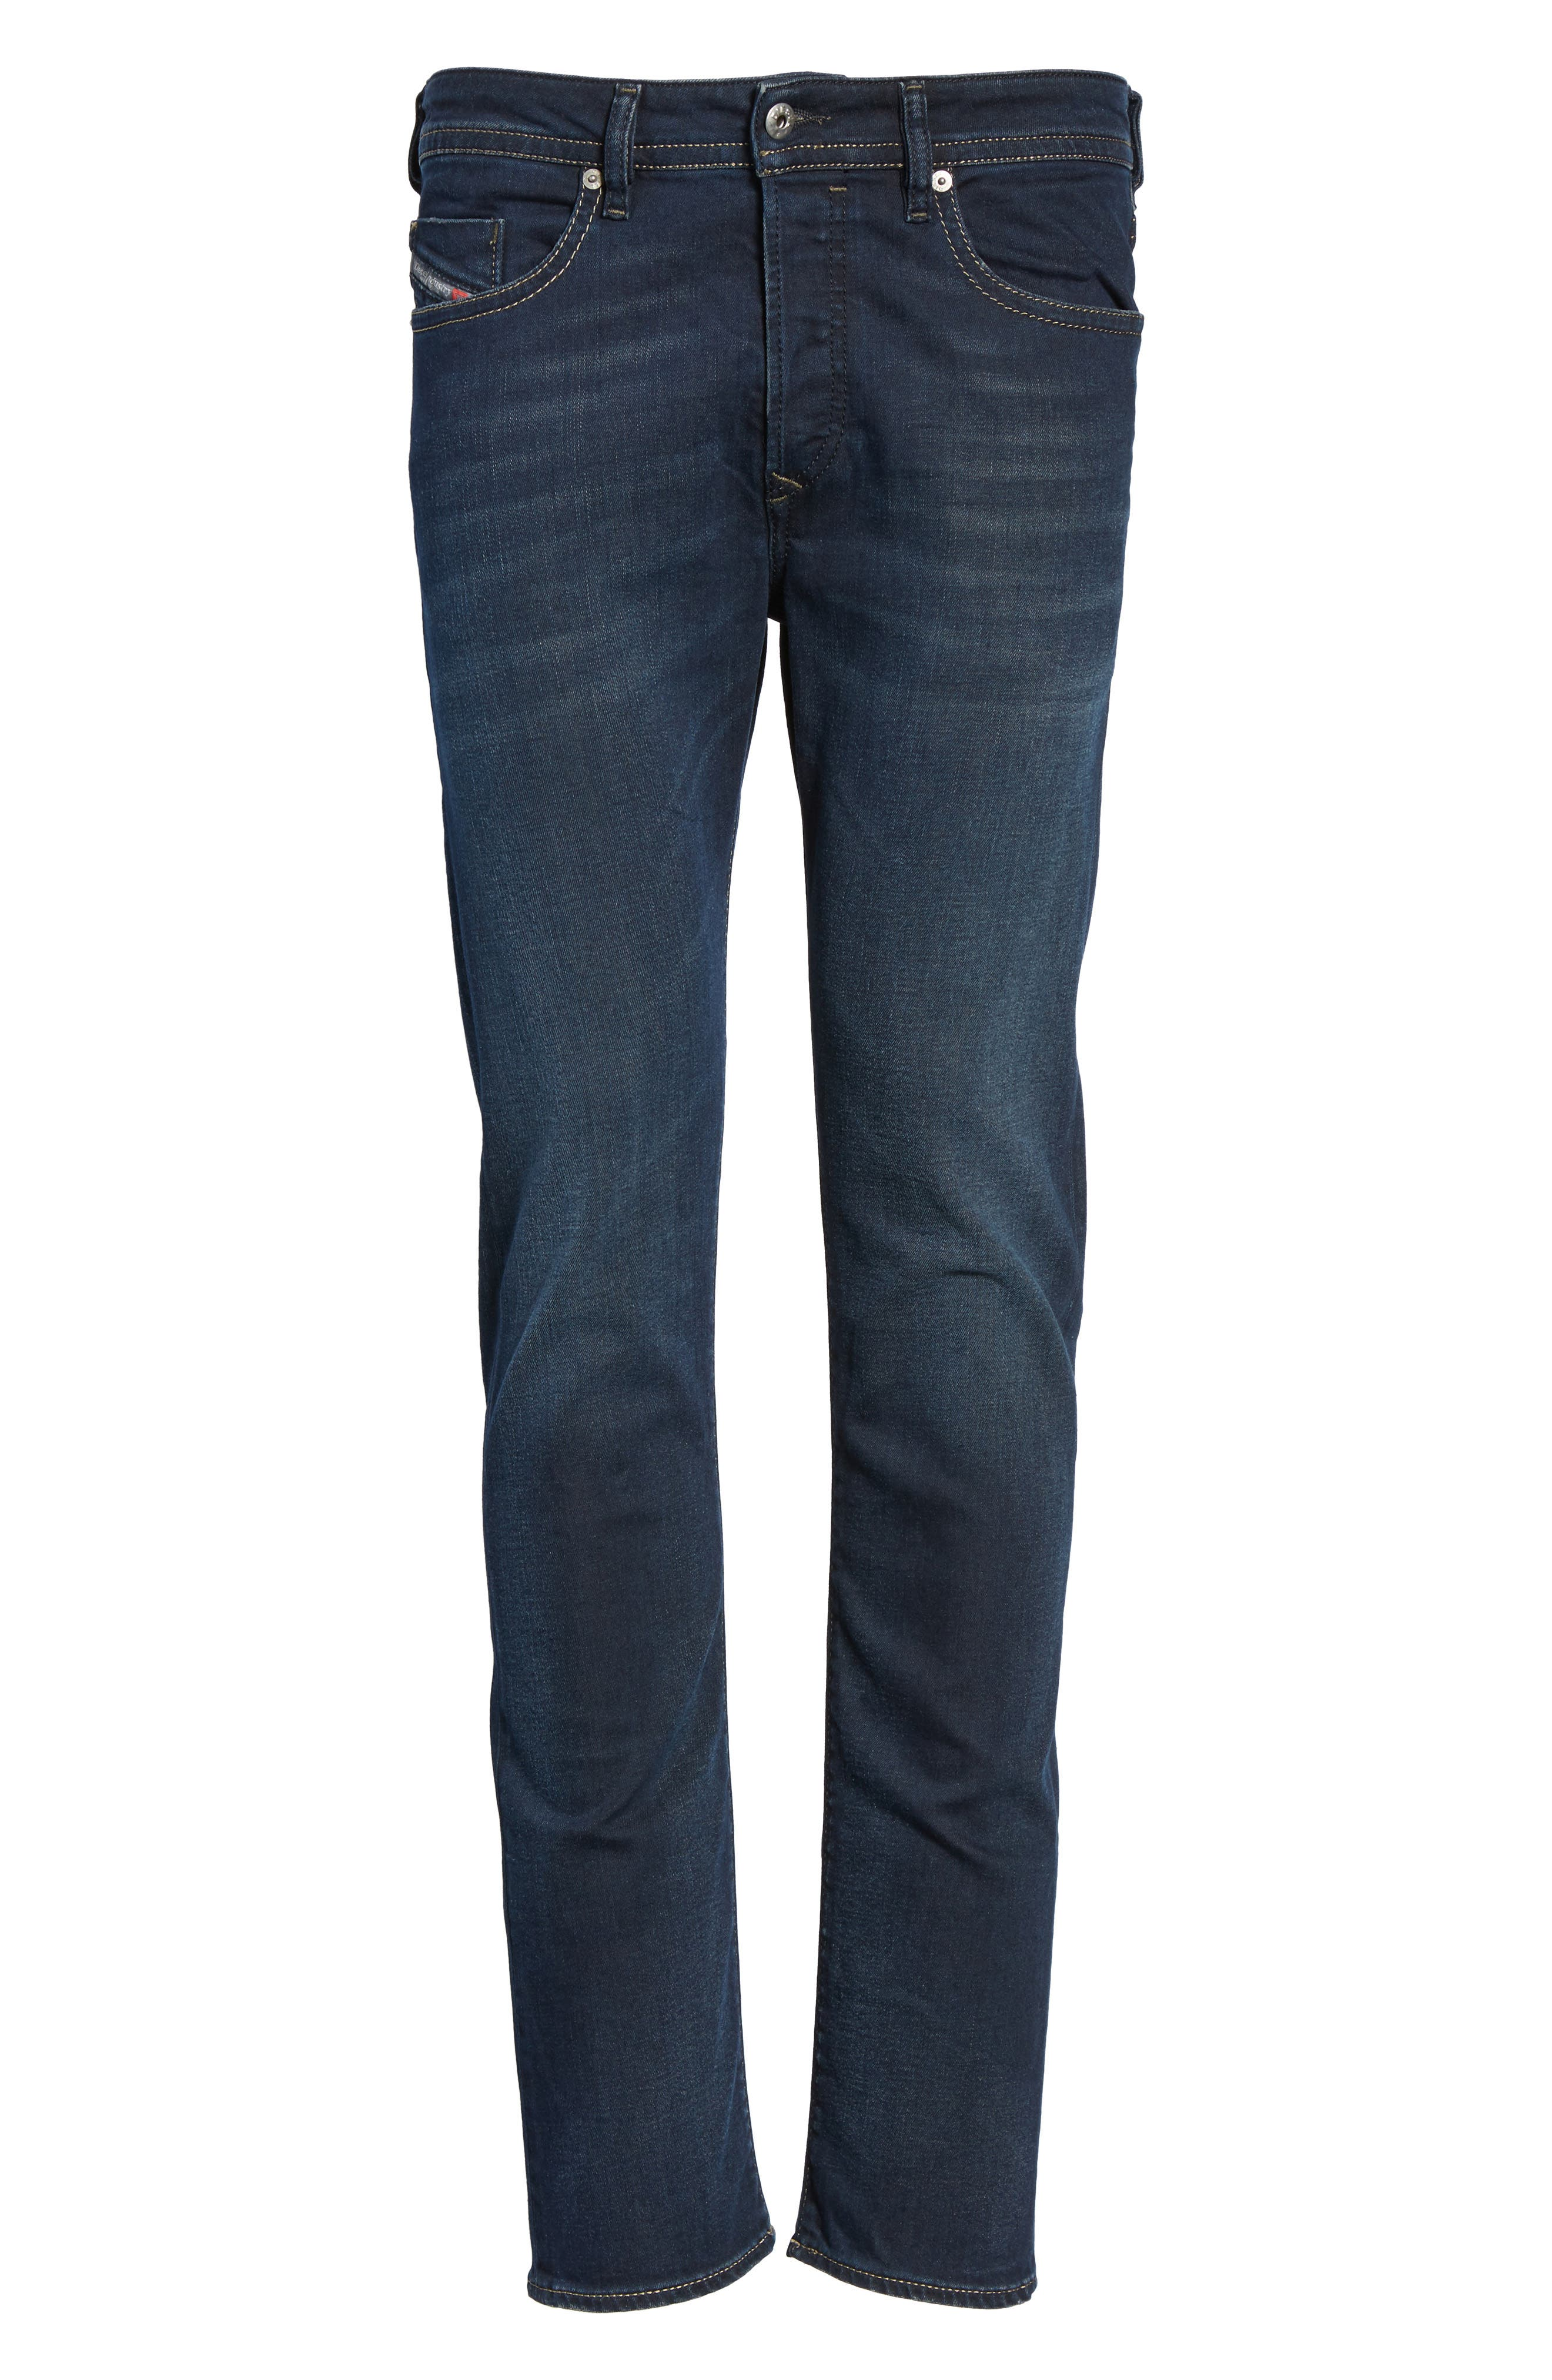 Buster Slim Straight Fit Jeans,                             Alternate thumbnail 6, color,                             Denim